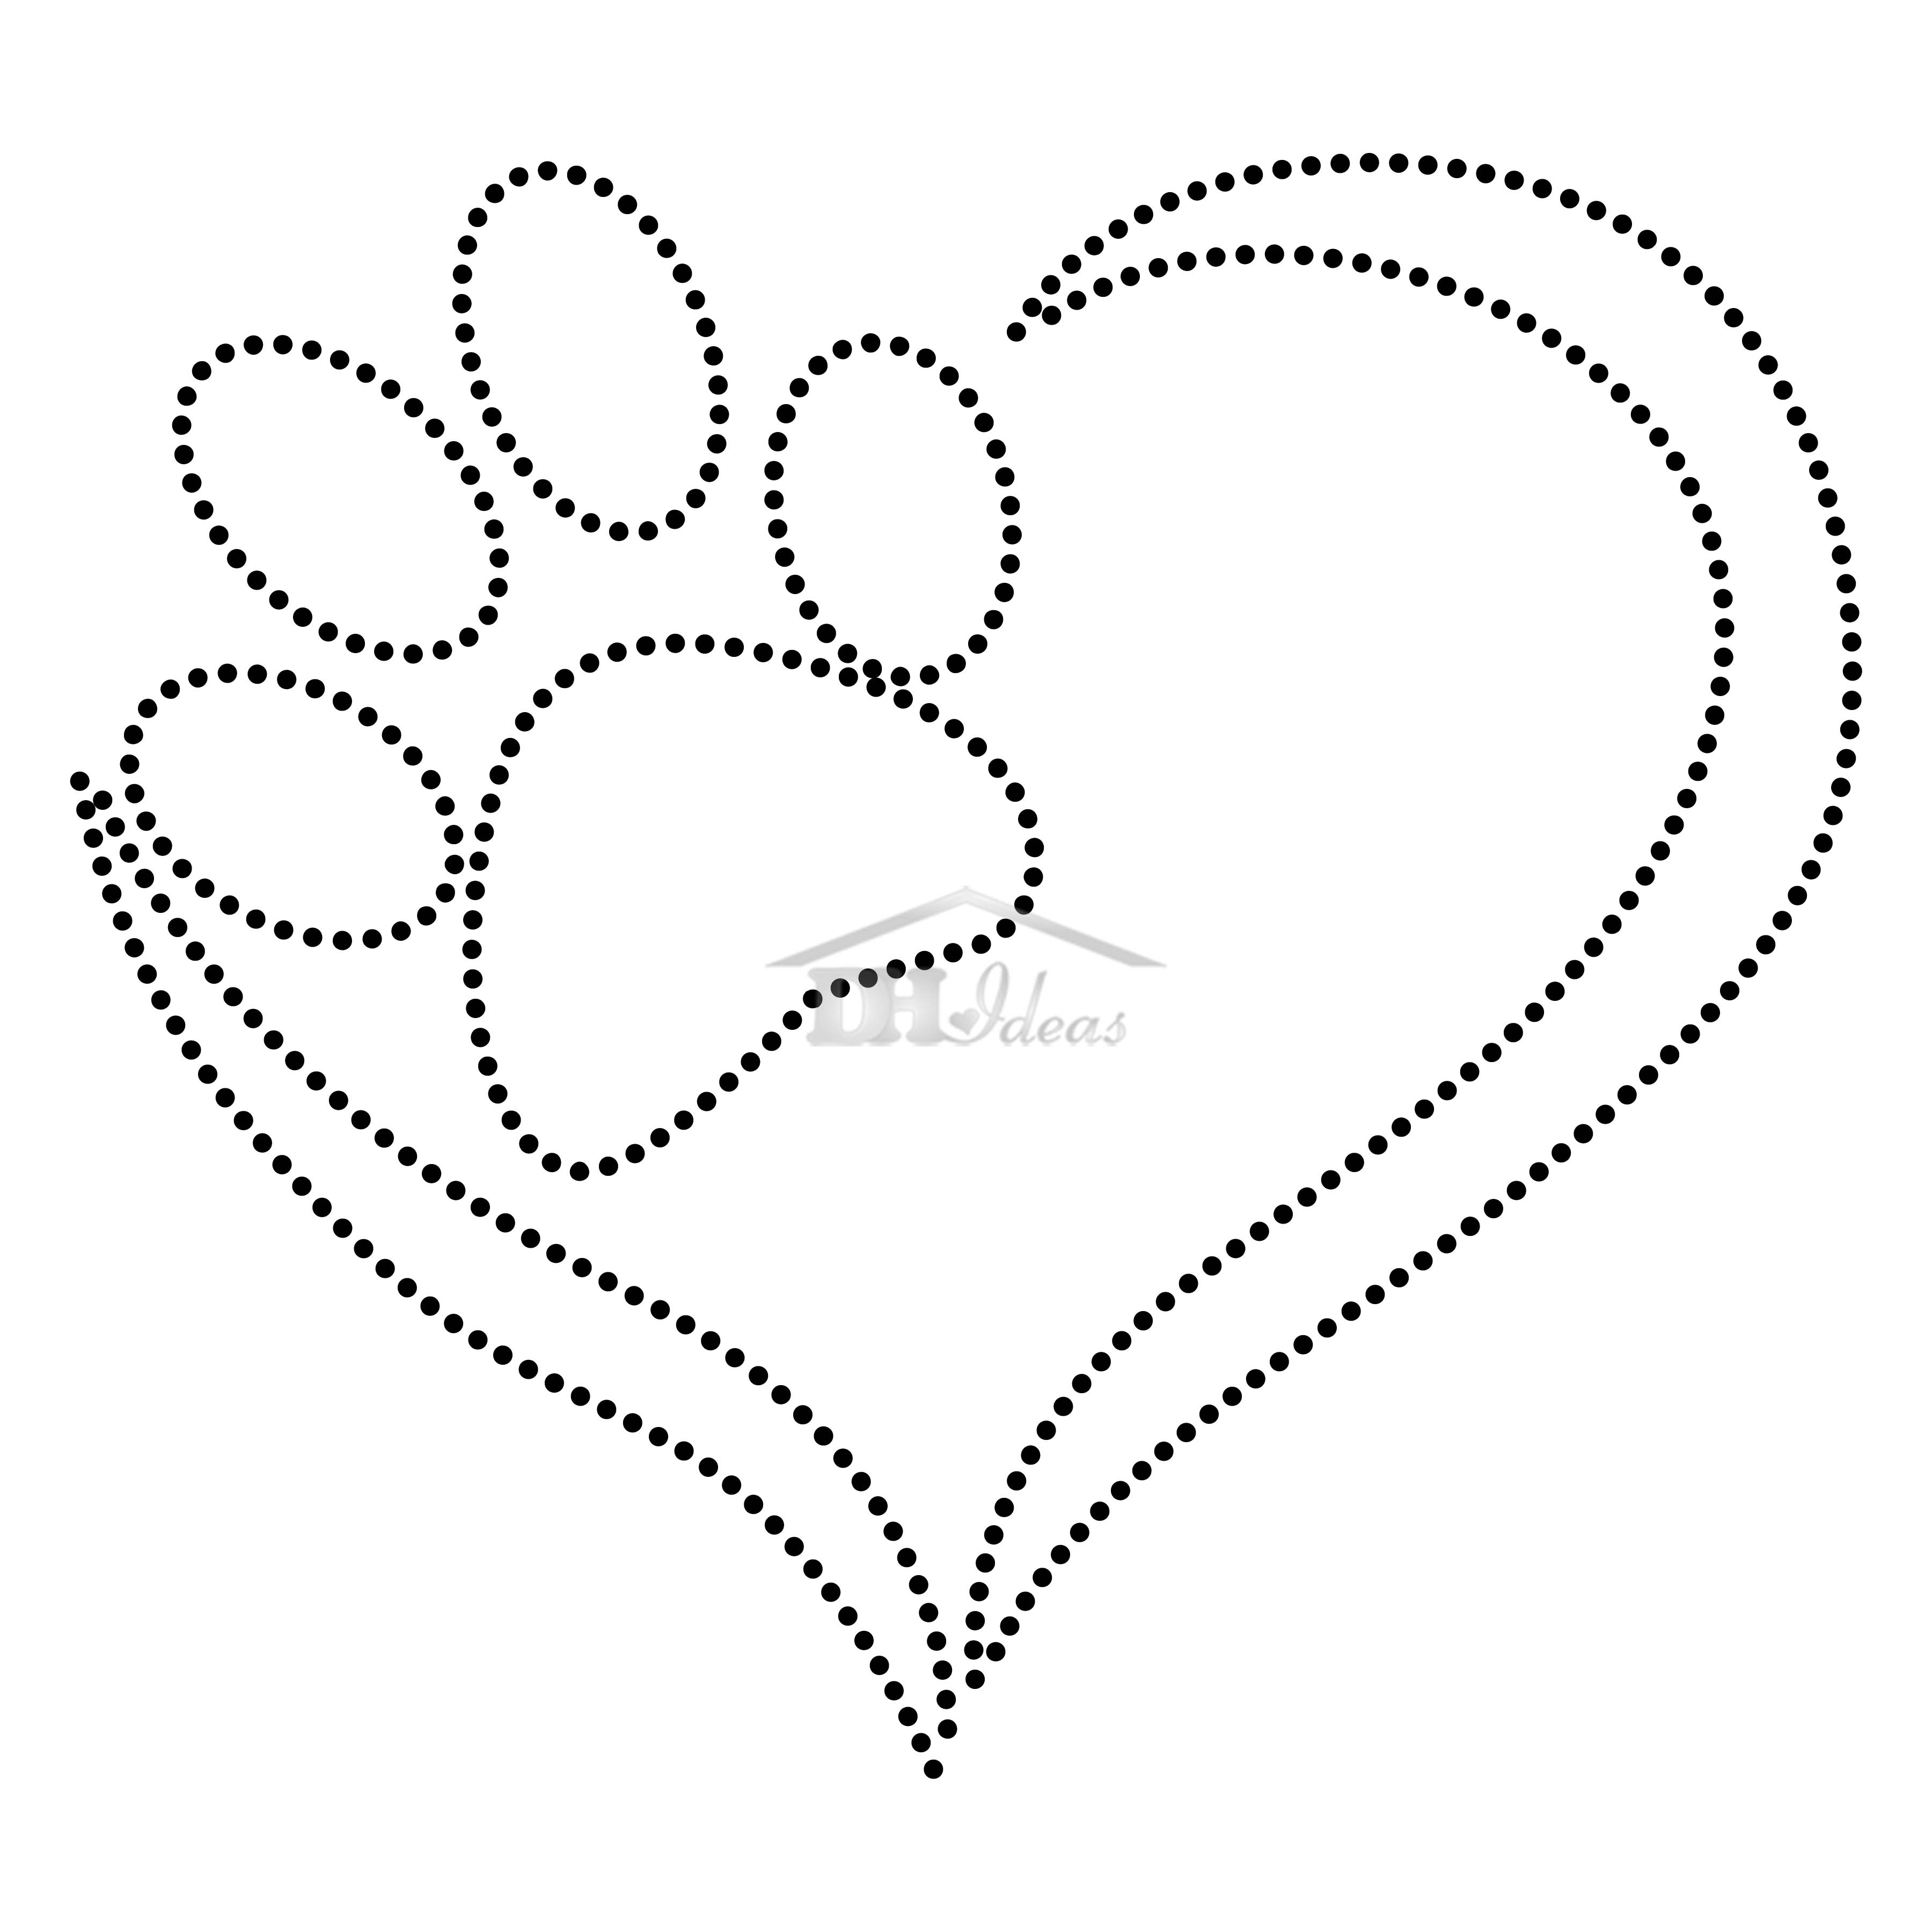 Printable String Art Templates That Are Lively